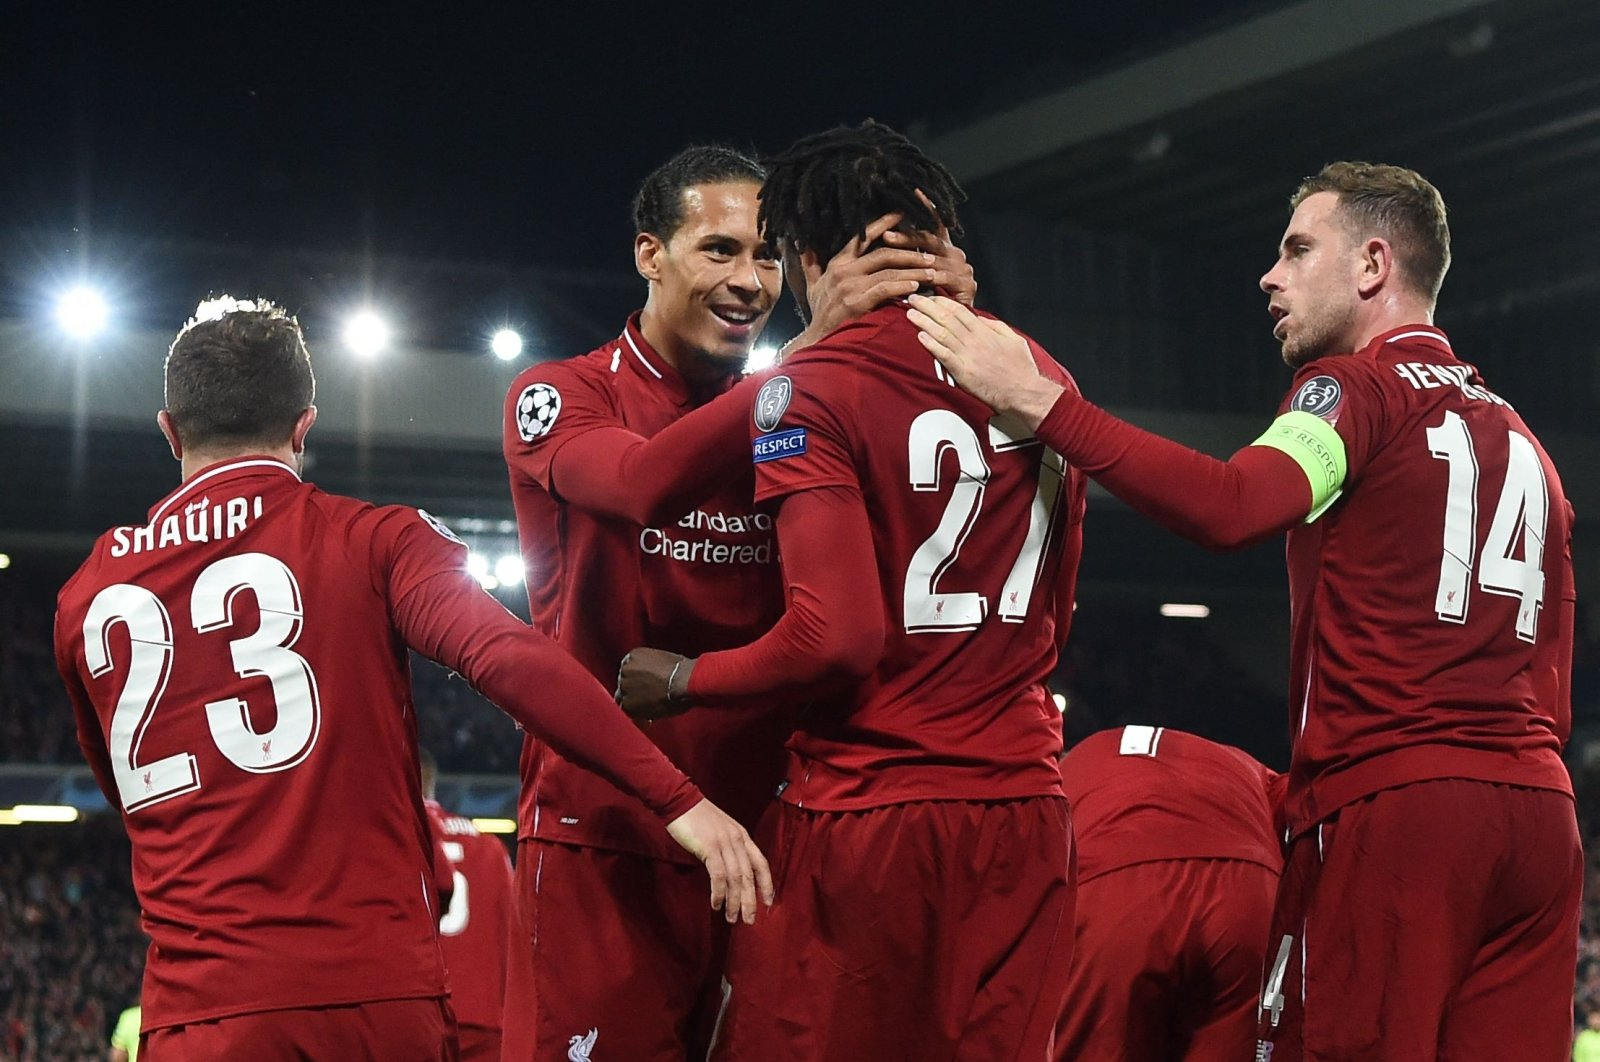 Liverpool's Belgium striker Divock Origi (2nd R) celebrates with Liverpool's Dutch defender Virgil van Dijk after scoring their fourth and winning goal during the UEFA Champions League semifinal against Barcelona at Anfield in Liverpool, northwest England, May 7, 2019. (AFP Photo)